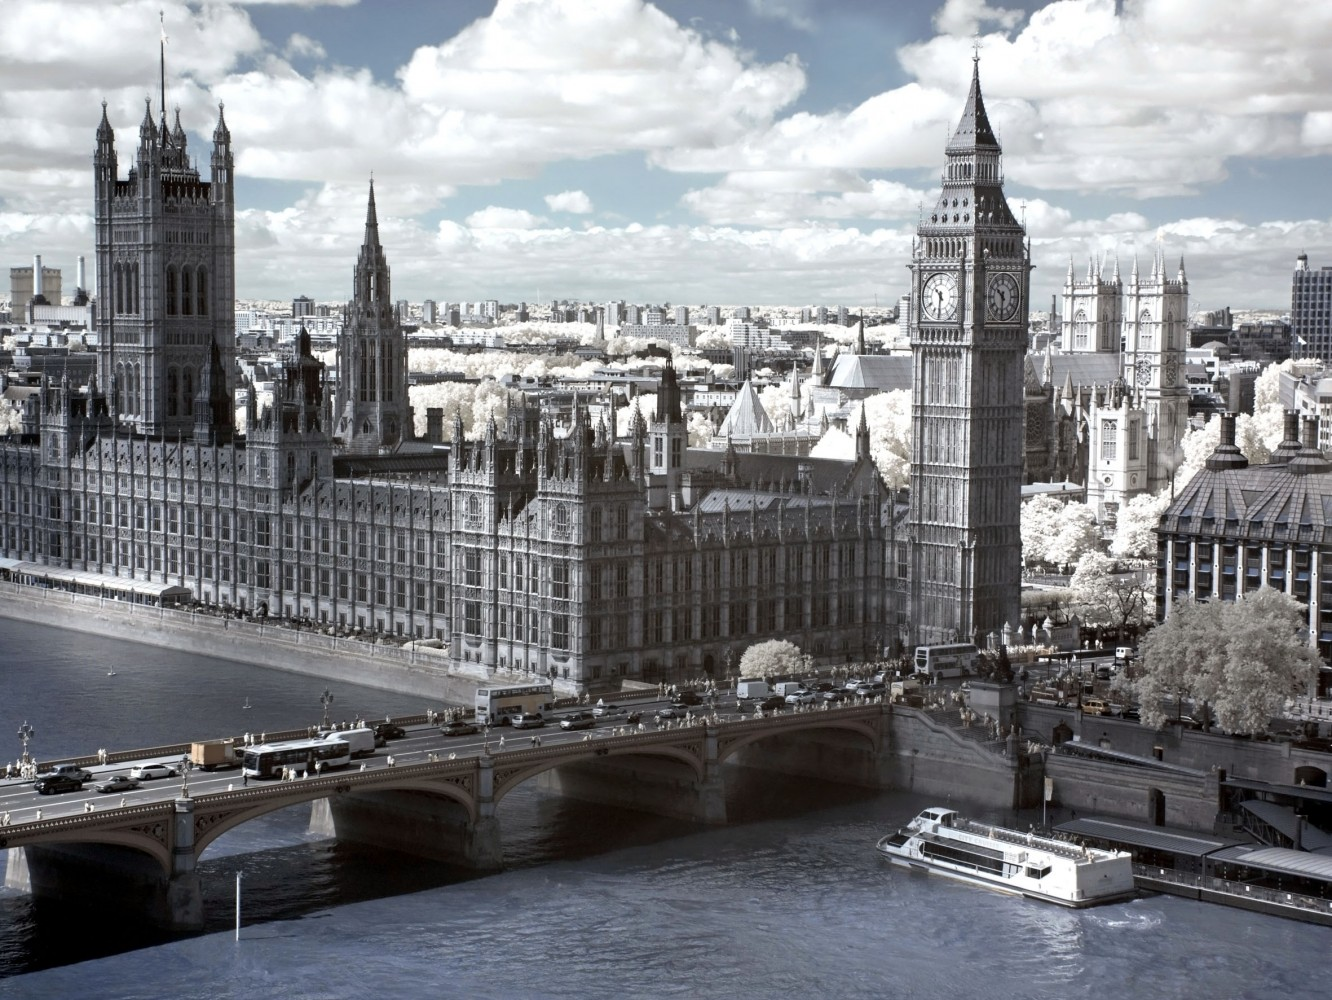 Wall mural wallpaper big ben london temse photo 360 cm x 270 cm wall mural wallpaper big ben london temse photo 360 cm x 270 cm 394 yd x 295 yd amipublicfo Choice Image